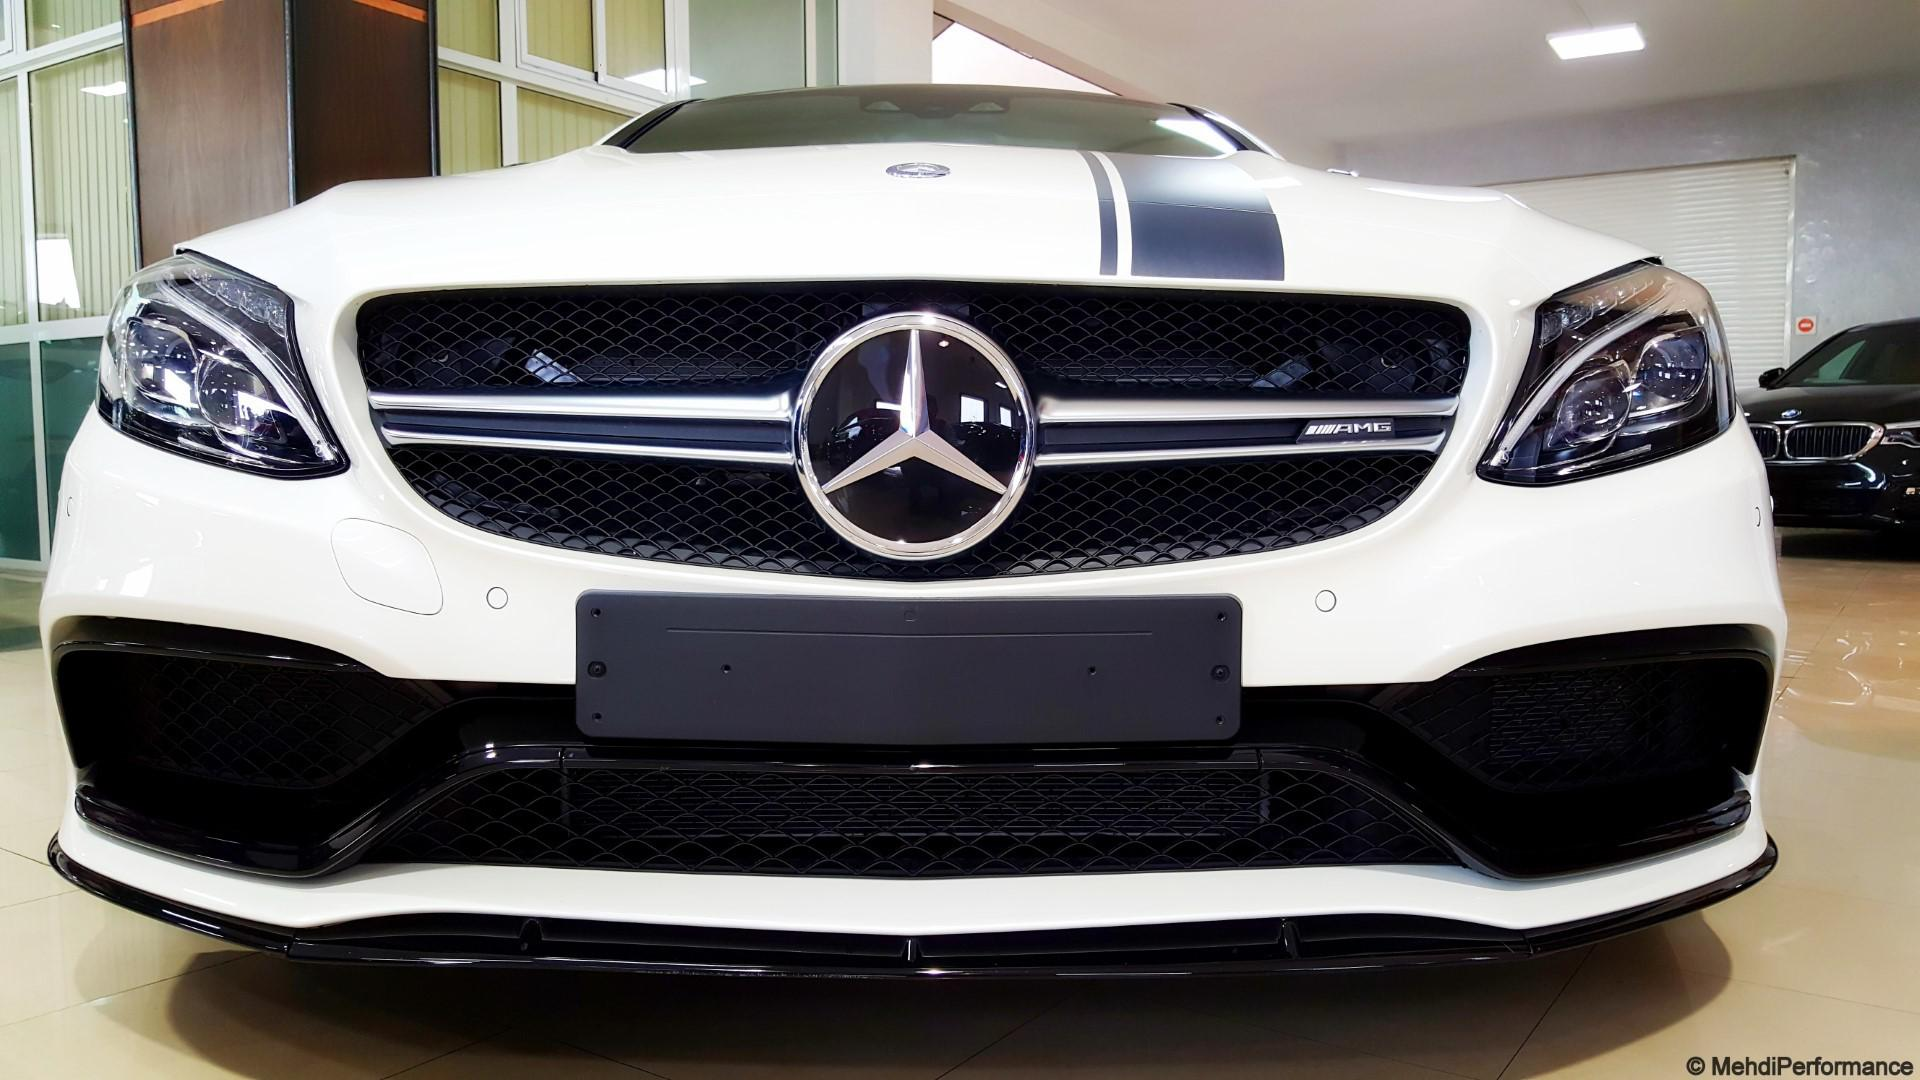 mercedes-amg-c-coupe-63-s-serie-edition-1-332-3.jpg